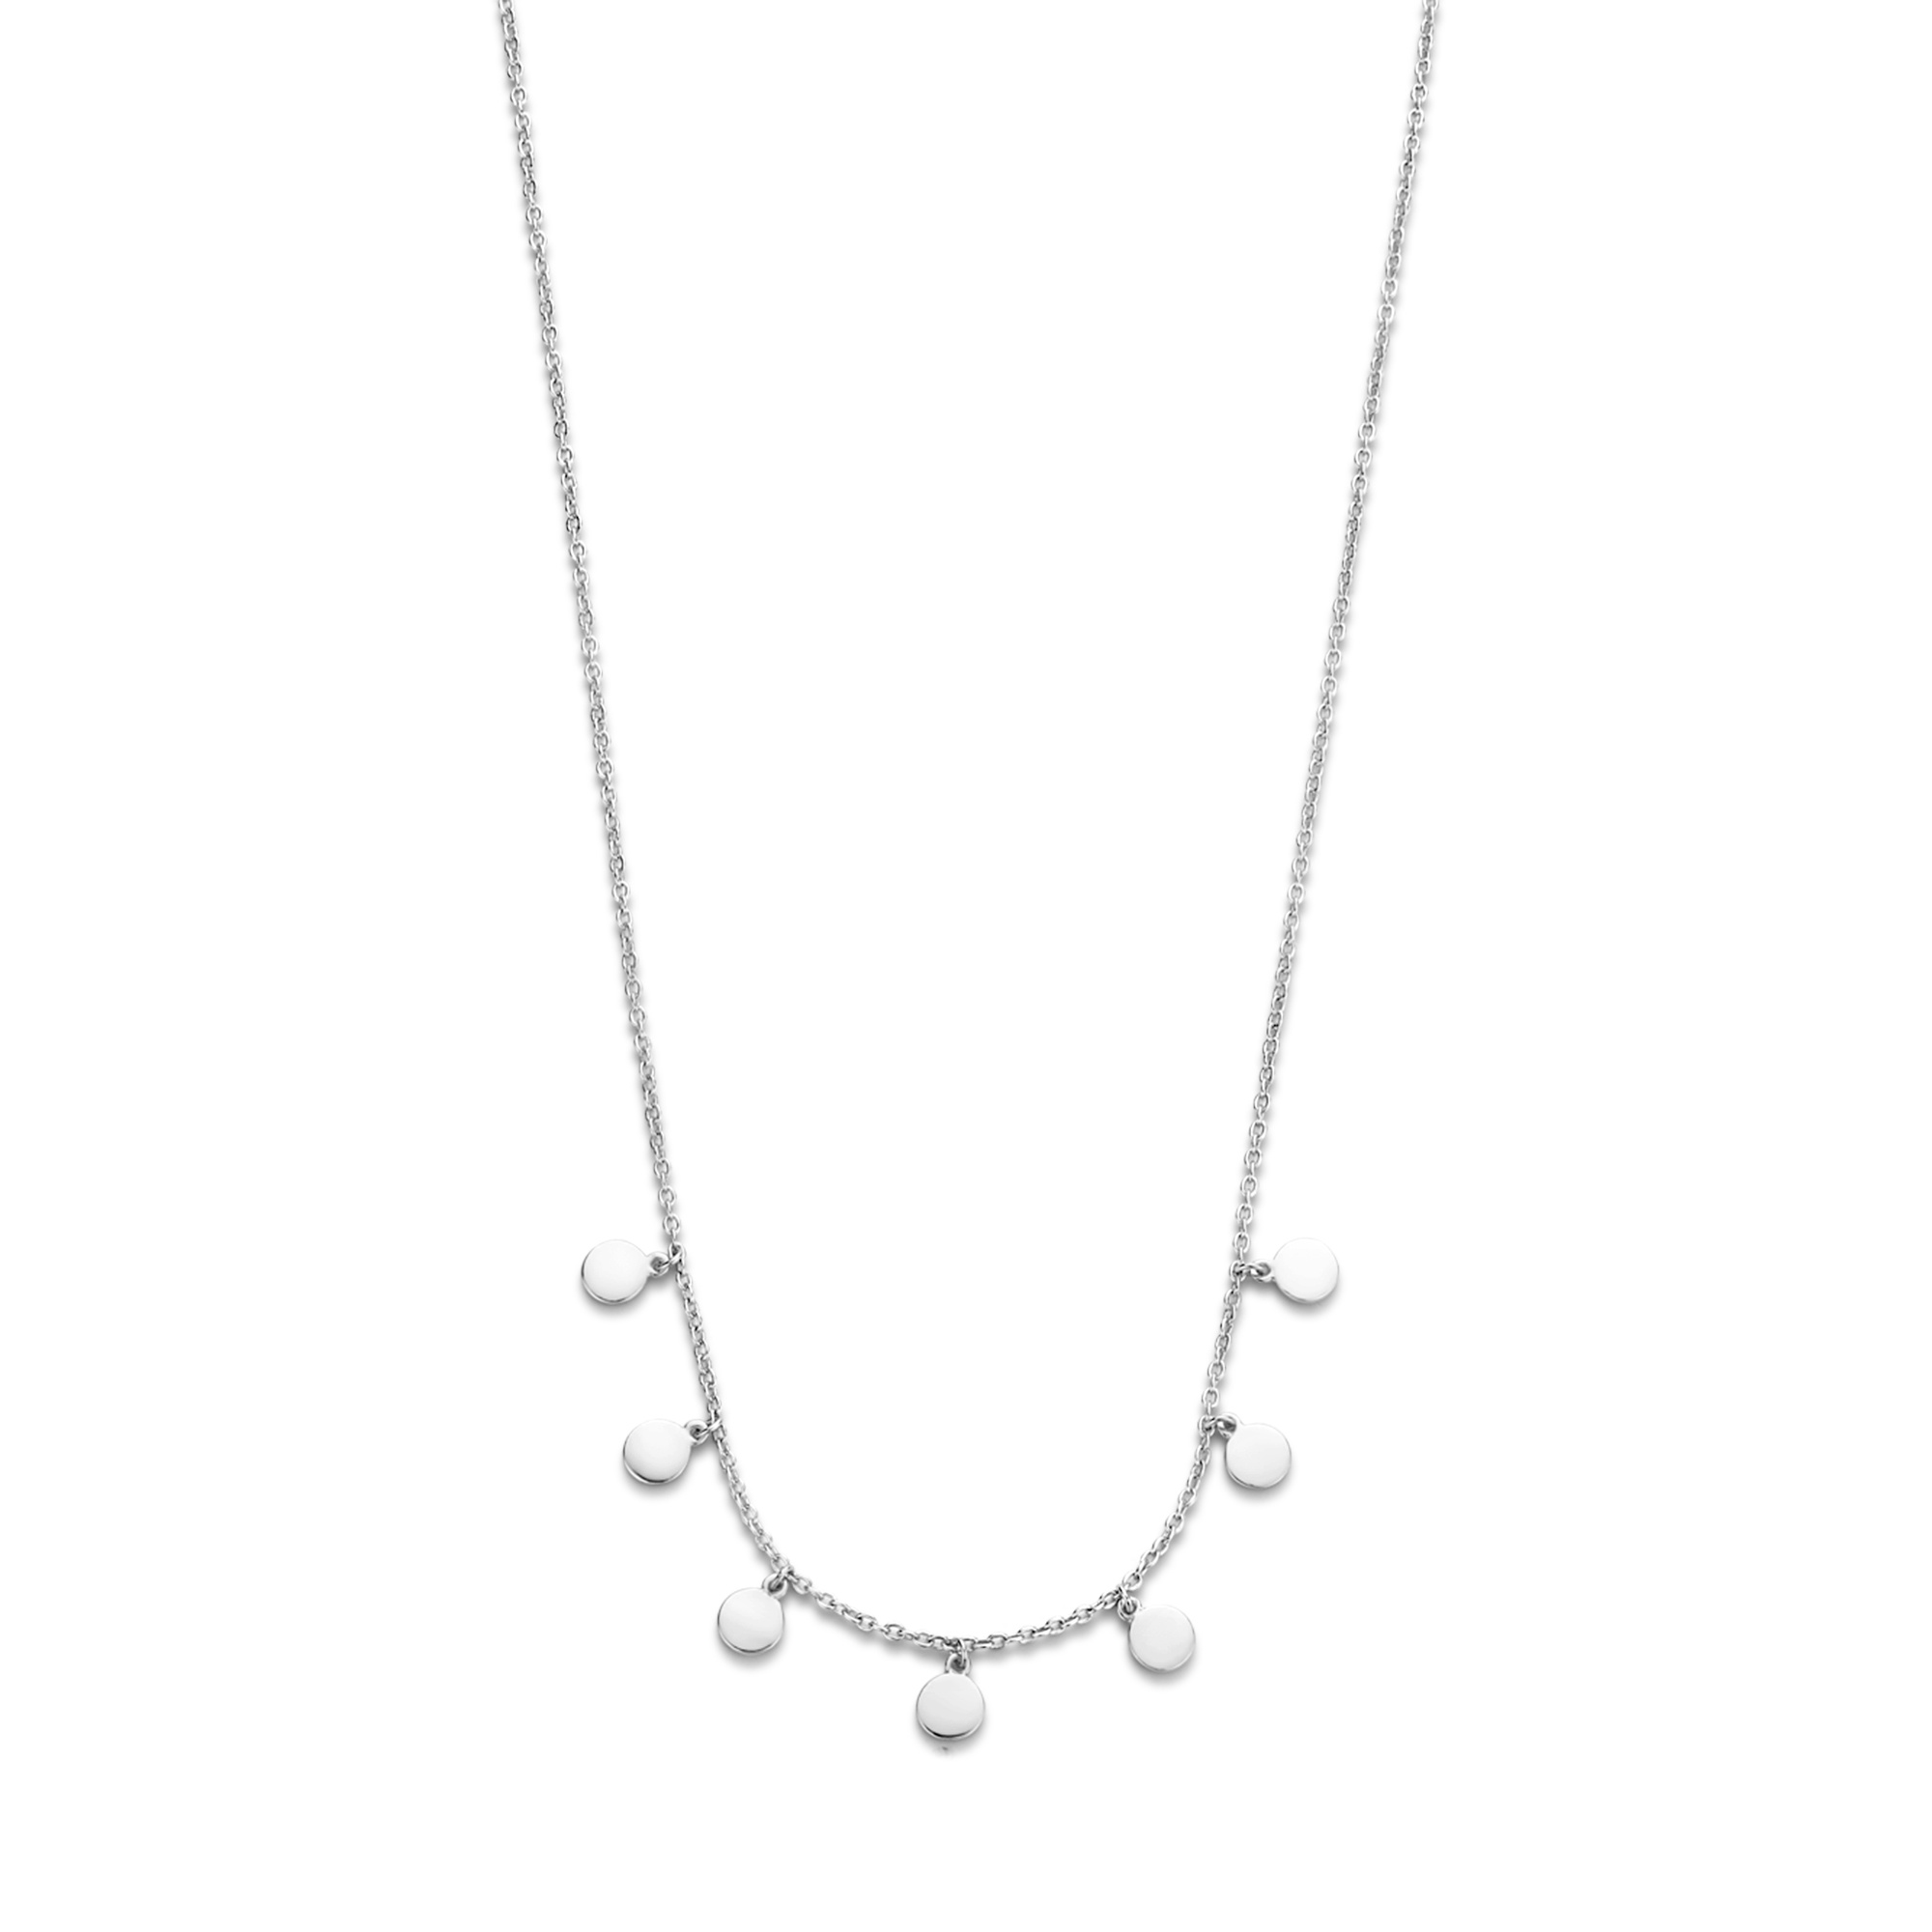 Selected Jewels Julie Belle 925 sterling silver necklace with coins